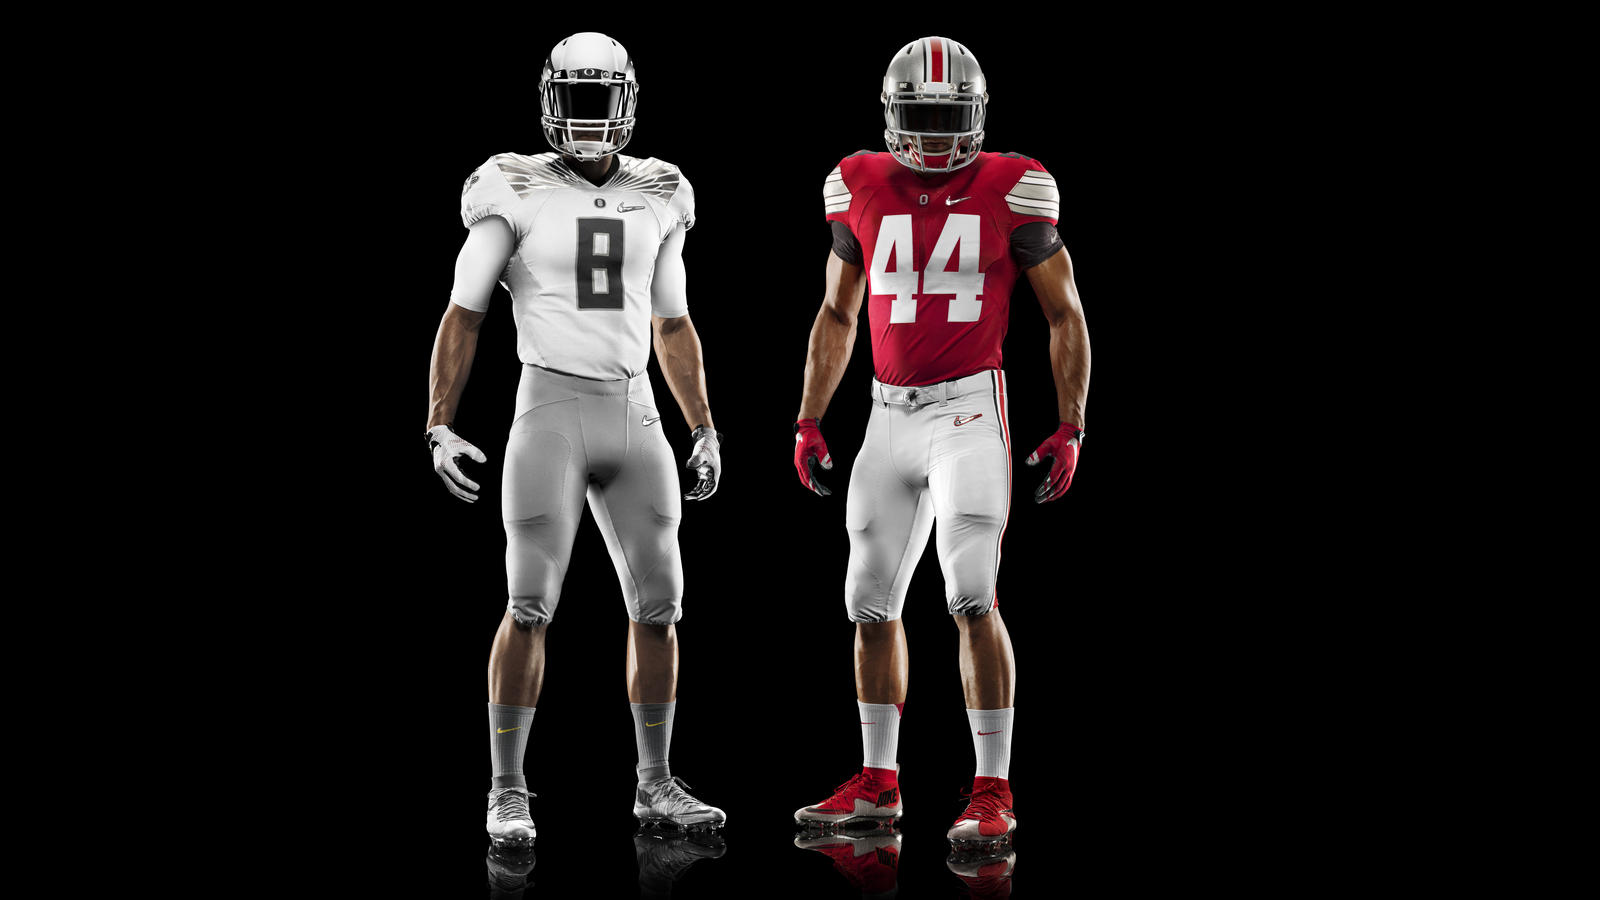 fef0e39ef56 HO14_NFB_NCAA_Group_Pair_Front_HR. HO14_NFB_NCAA_Group_Pair_Back_HR.  HO14_NFB_ICONIC_OHIOSTATE_OREGON_16X9. HO14_NFB_ICONIC_OREGON_16X9